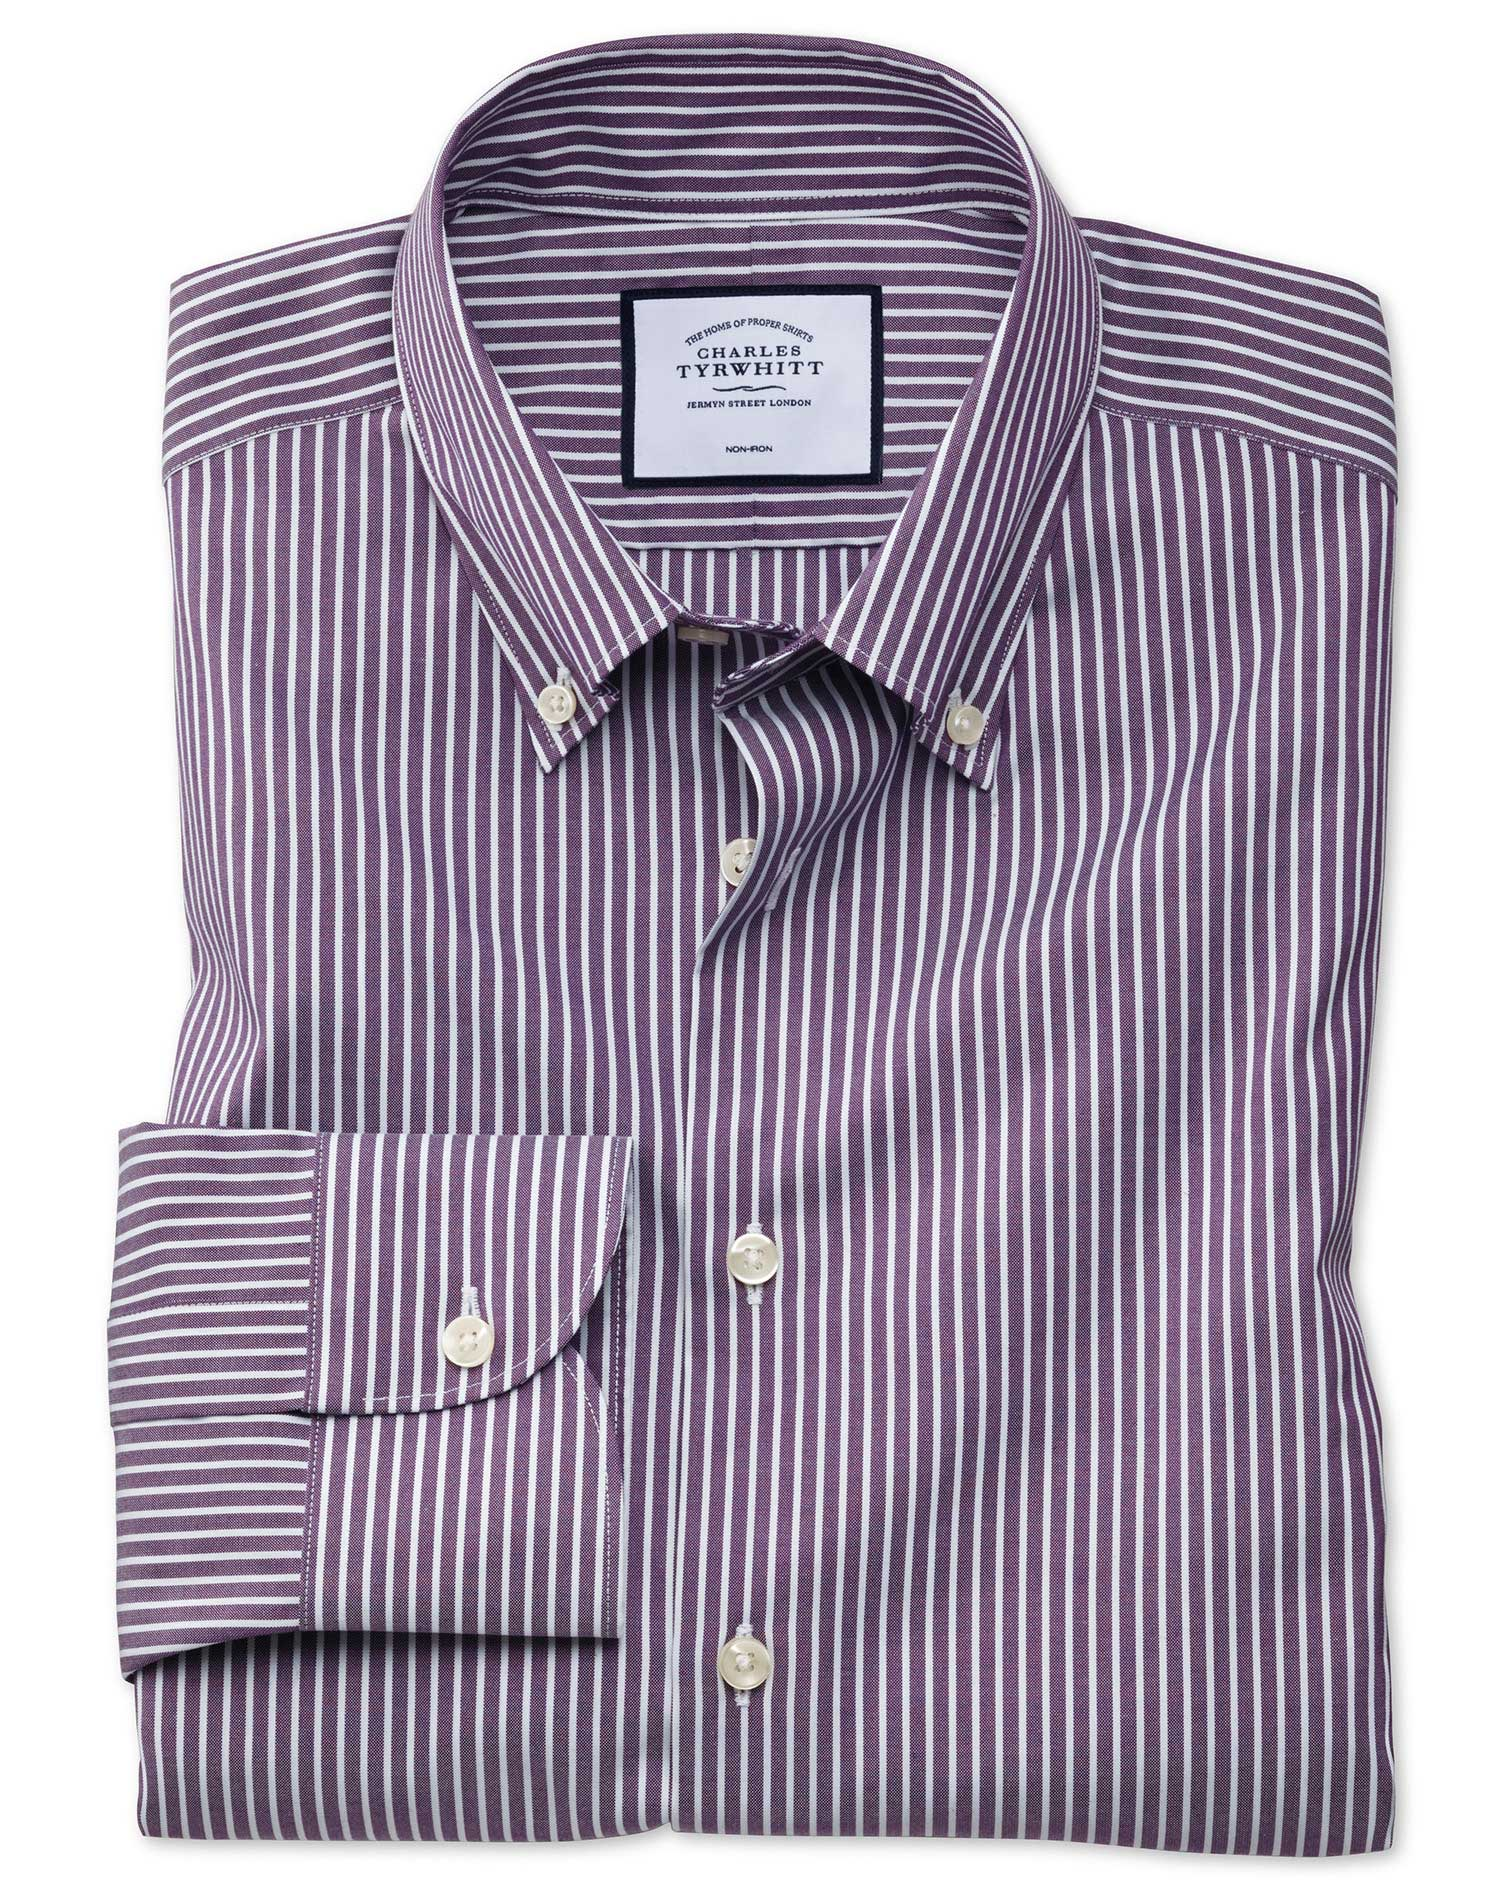 Extra Slim Fit Business Casual Non-Iron Button-Down Purple and White Stripe Cotton Formal Shirt Sing